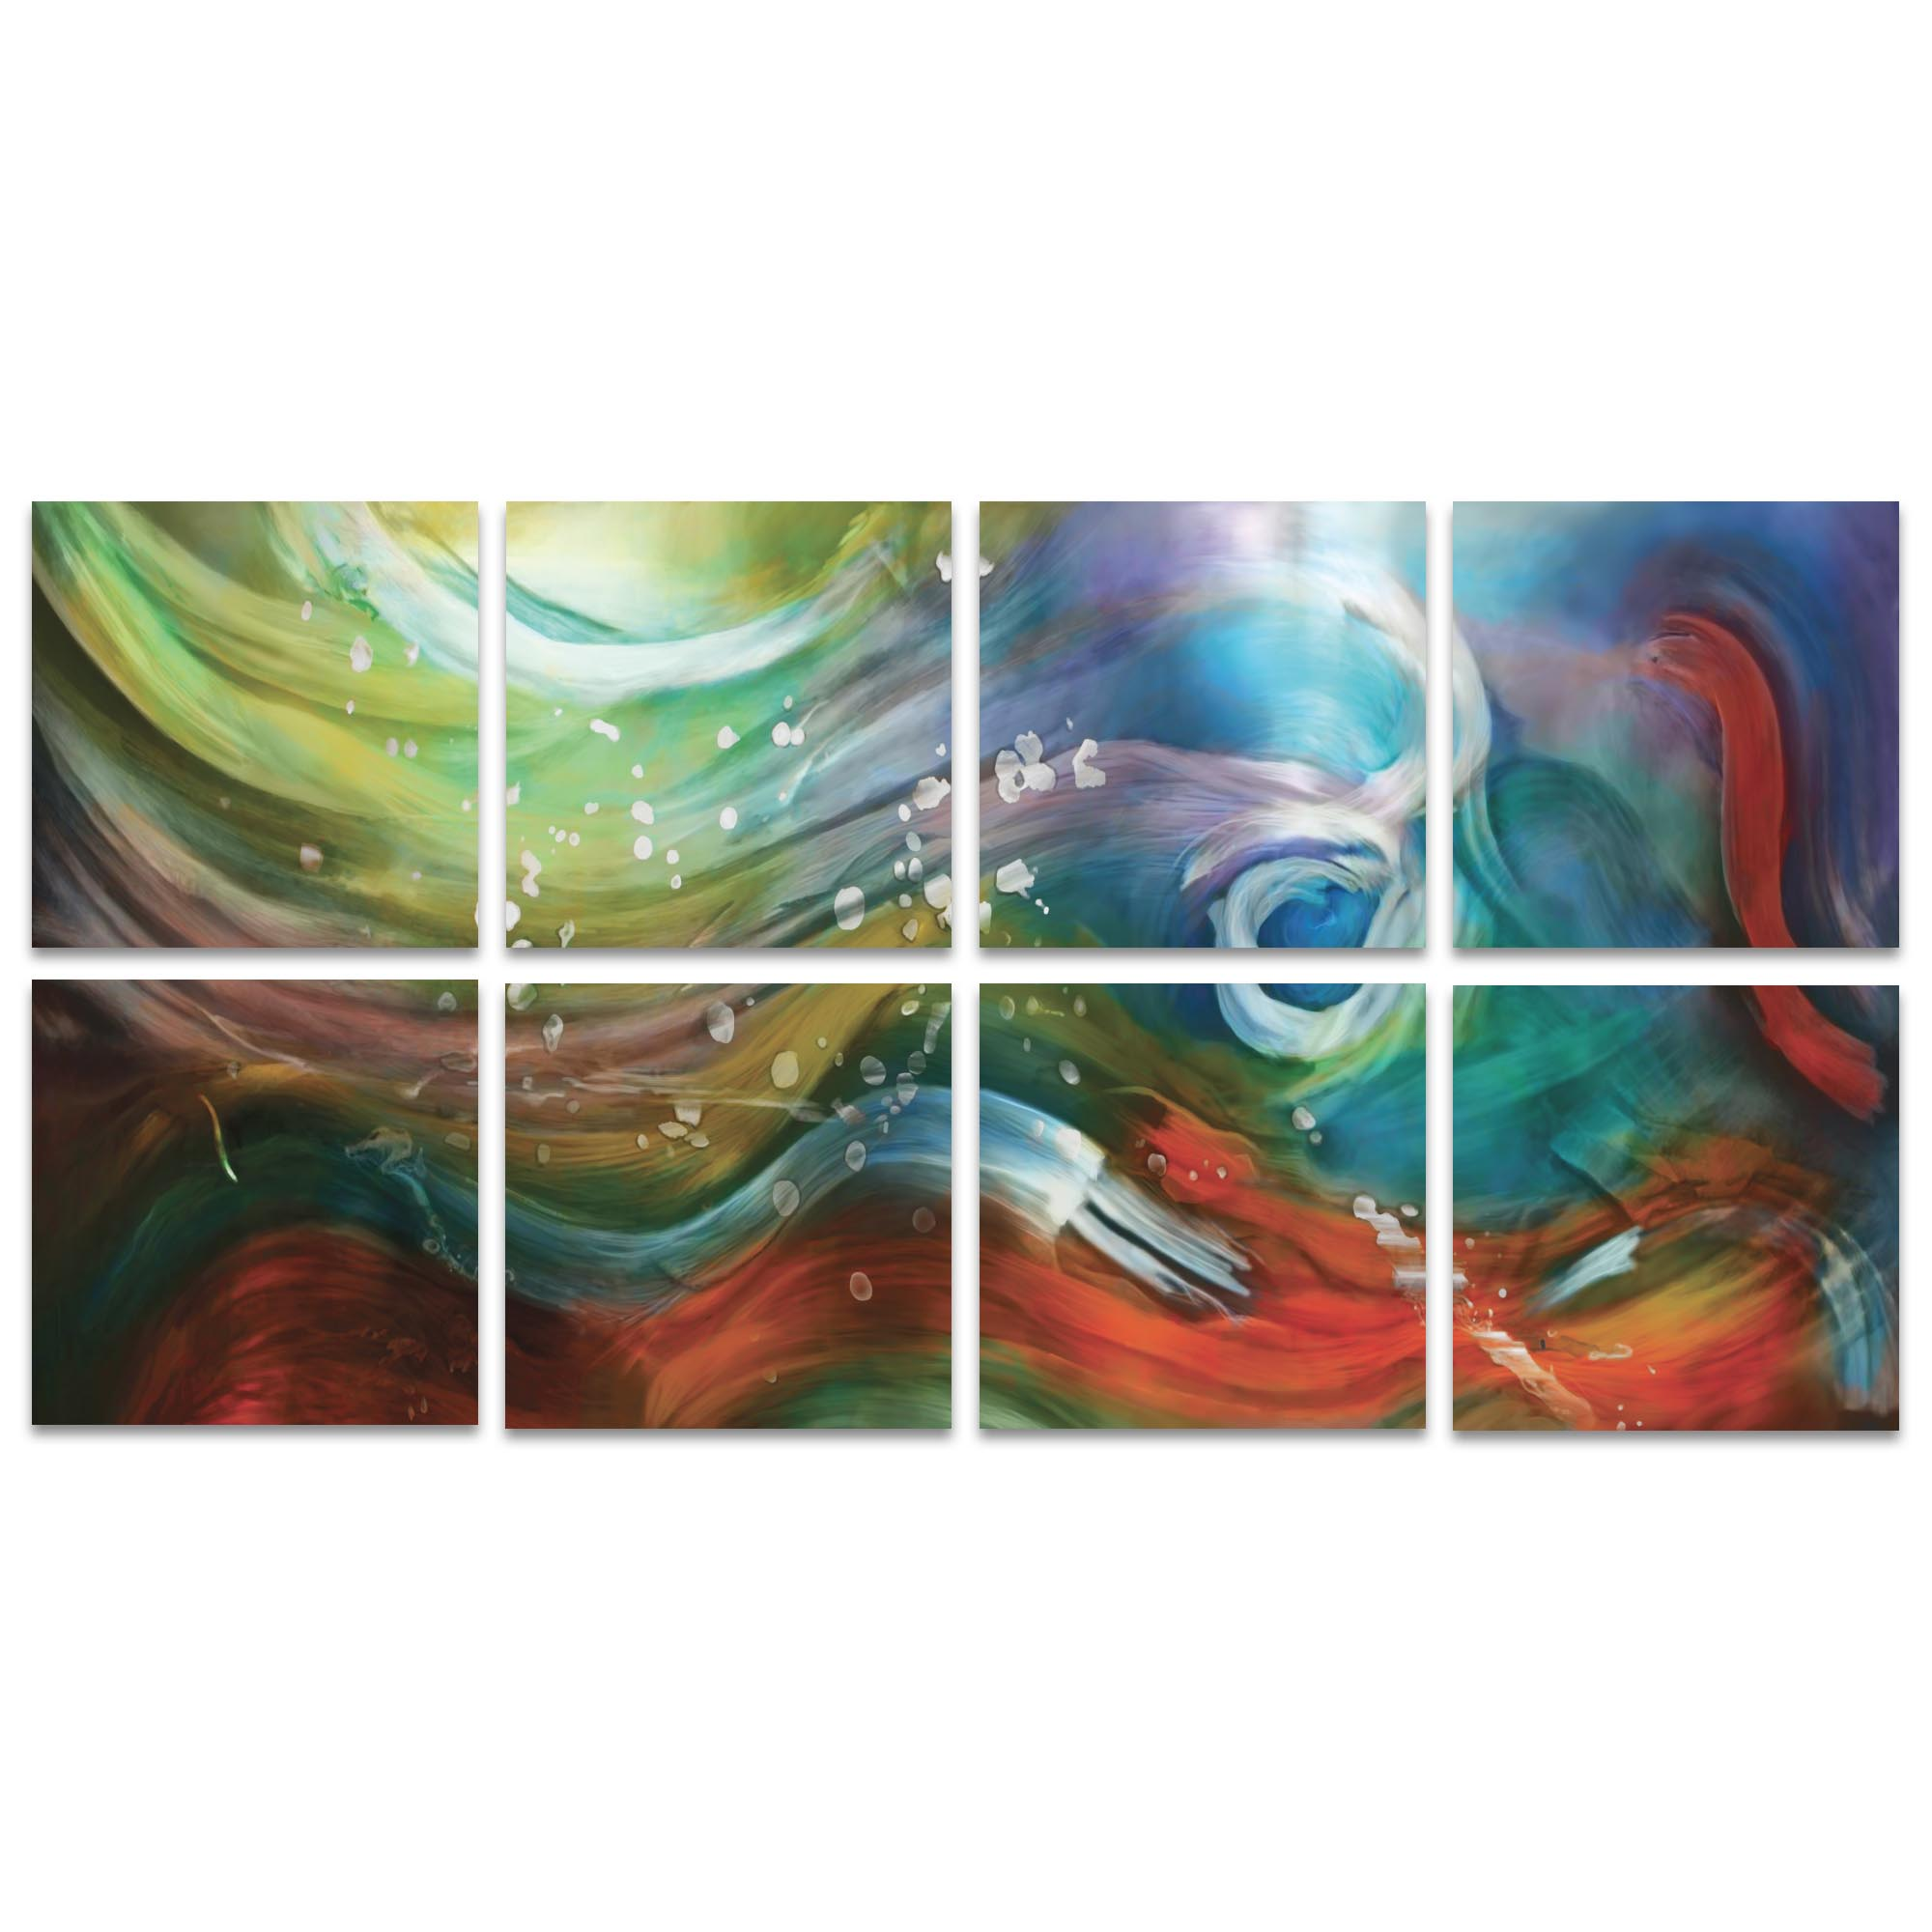 Esne Windows 51x25in. Metal or Acrylic Abstract Decor